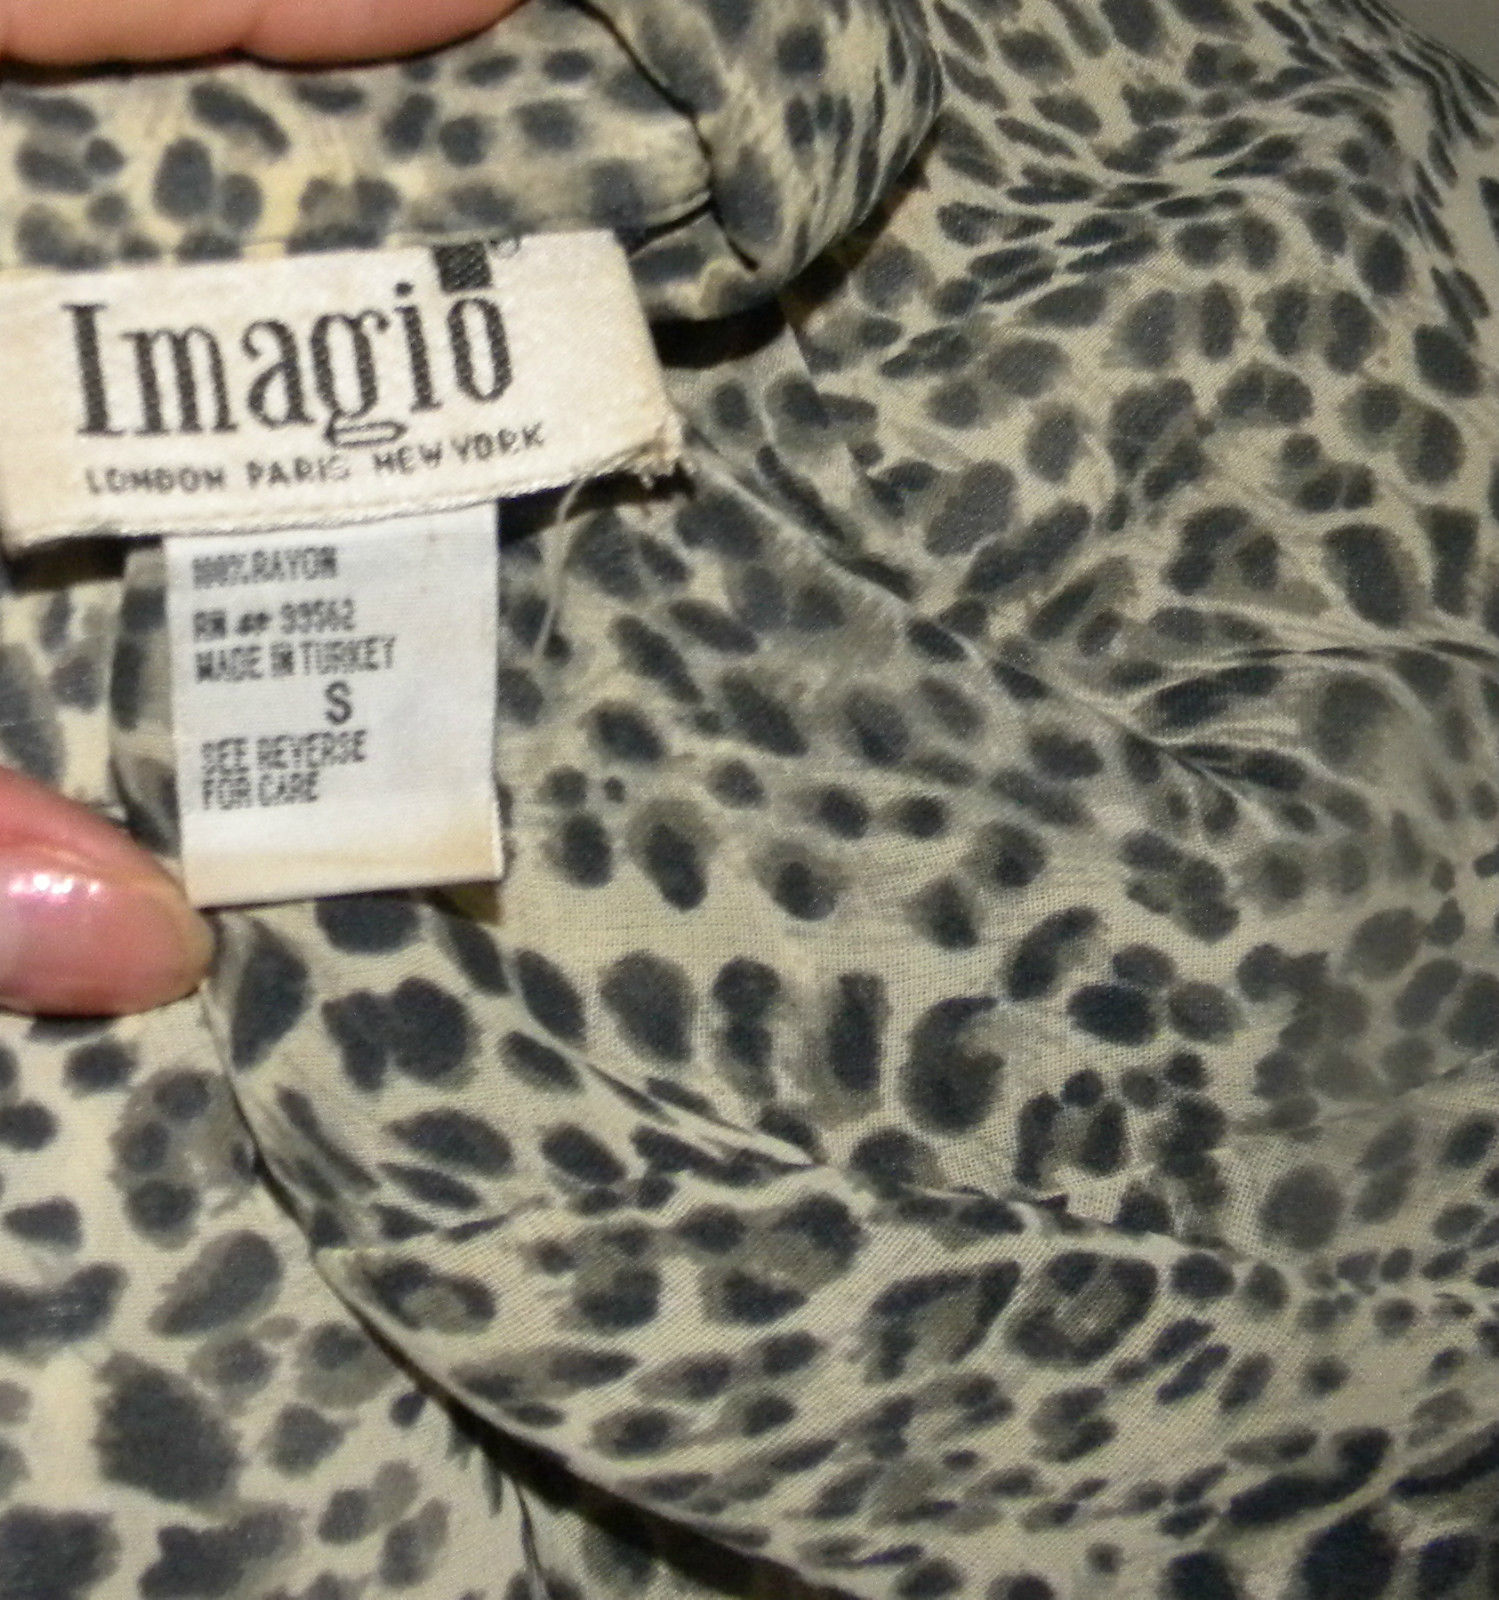 IMAGIO semi sheer animal print open front blouse knit top long sleeve S (6-8)